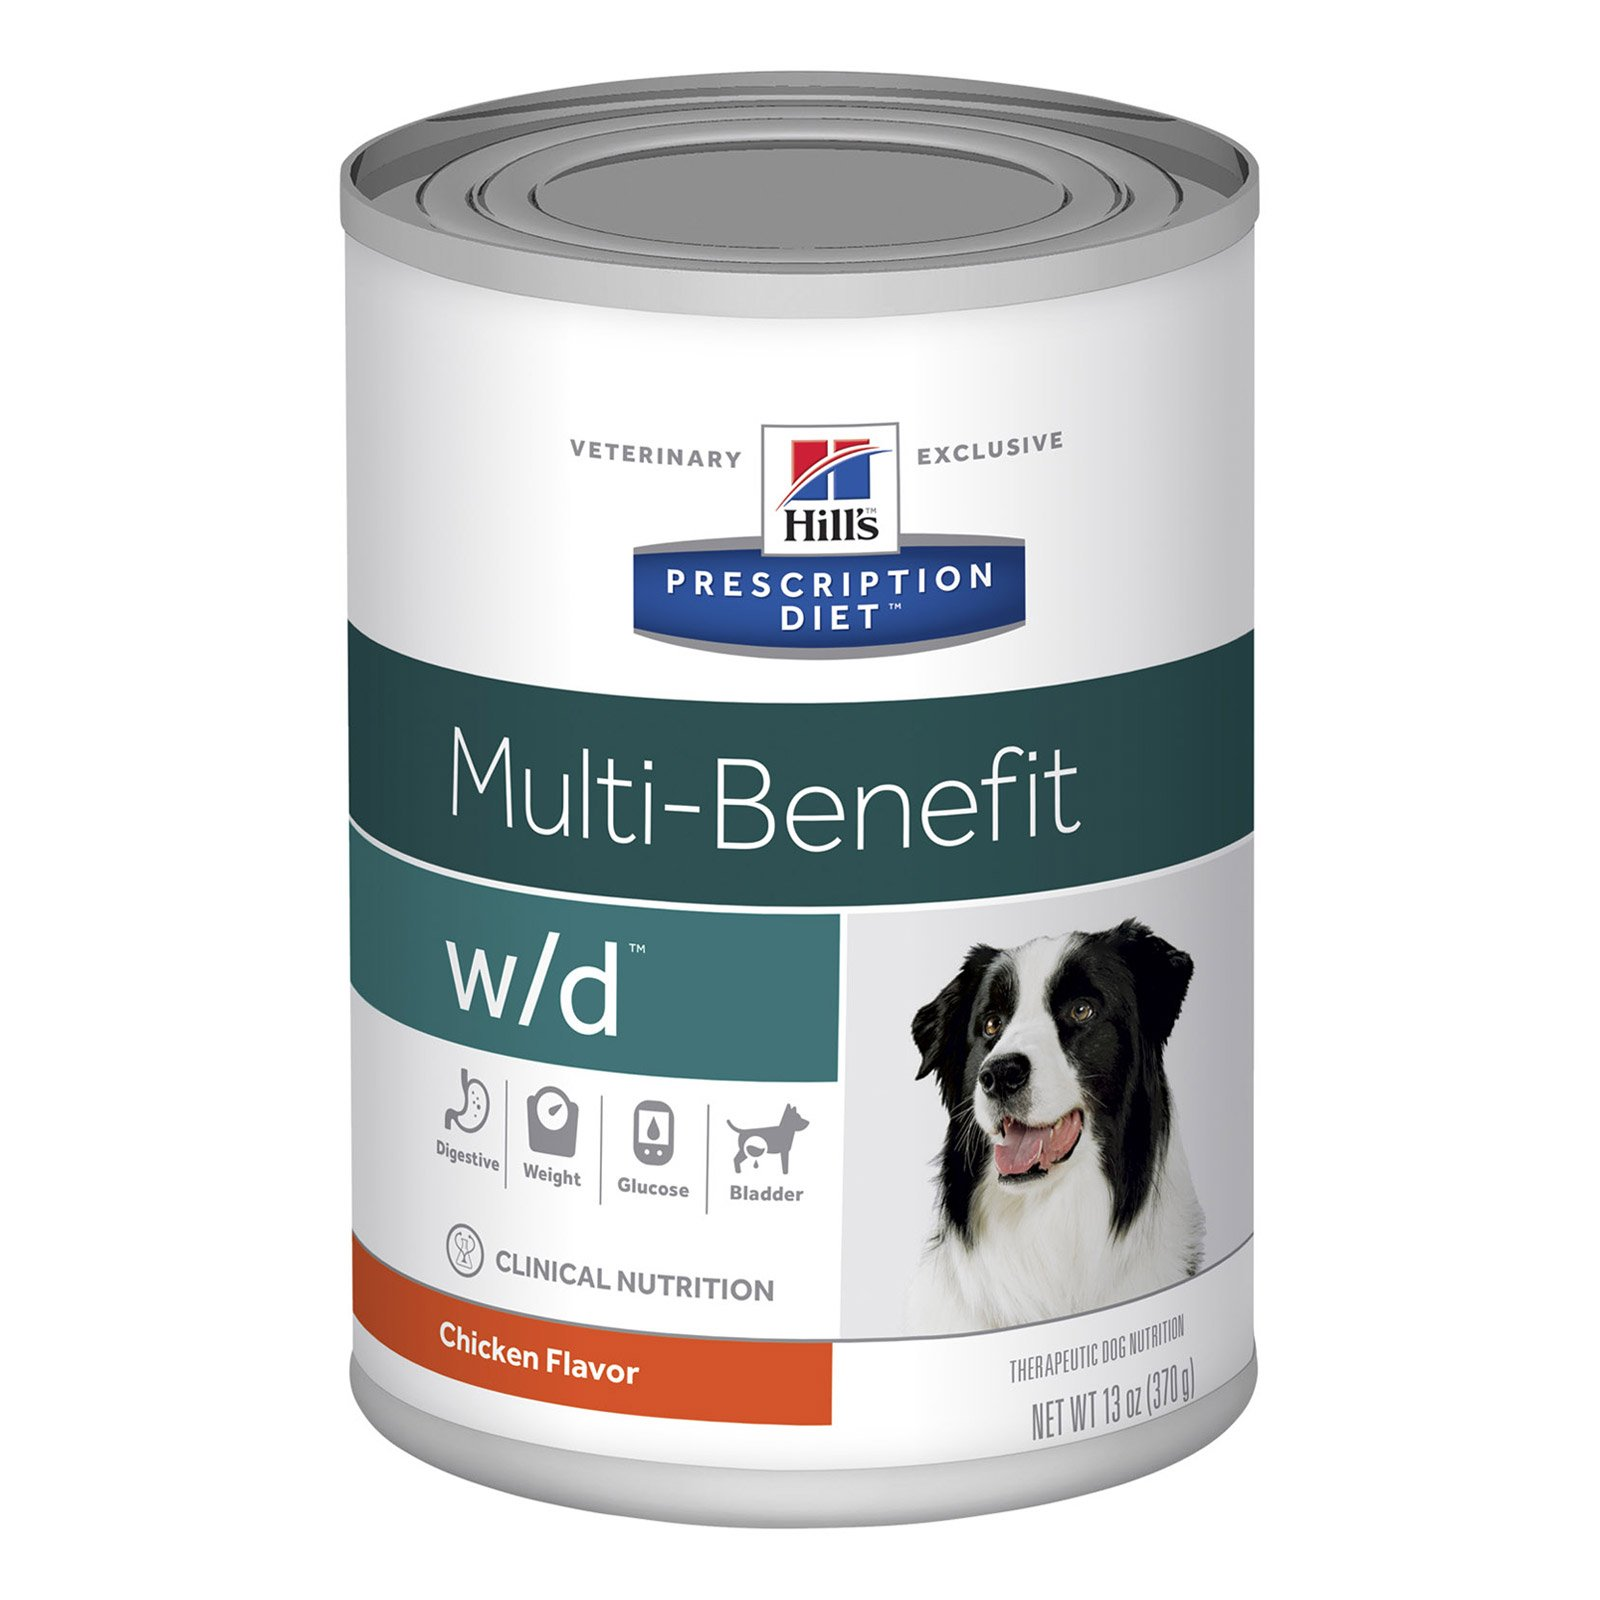 Hill's Prescription Diet w/d Digestive/Weight/Glucose Management Canned Dog Food